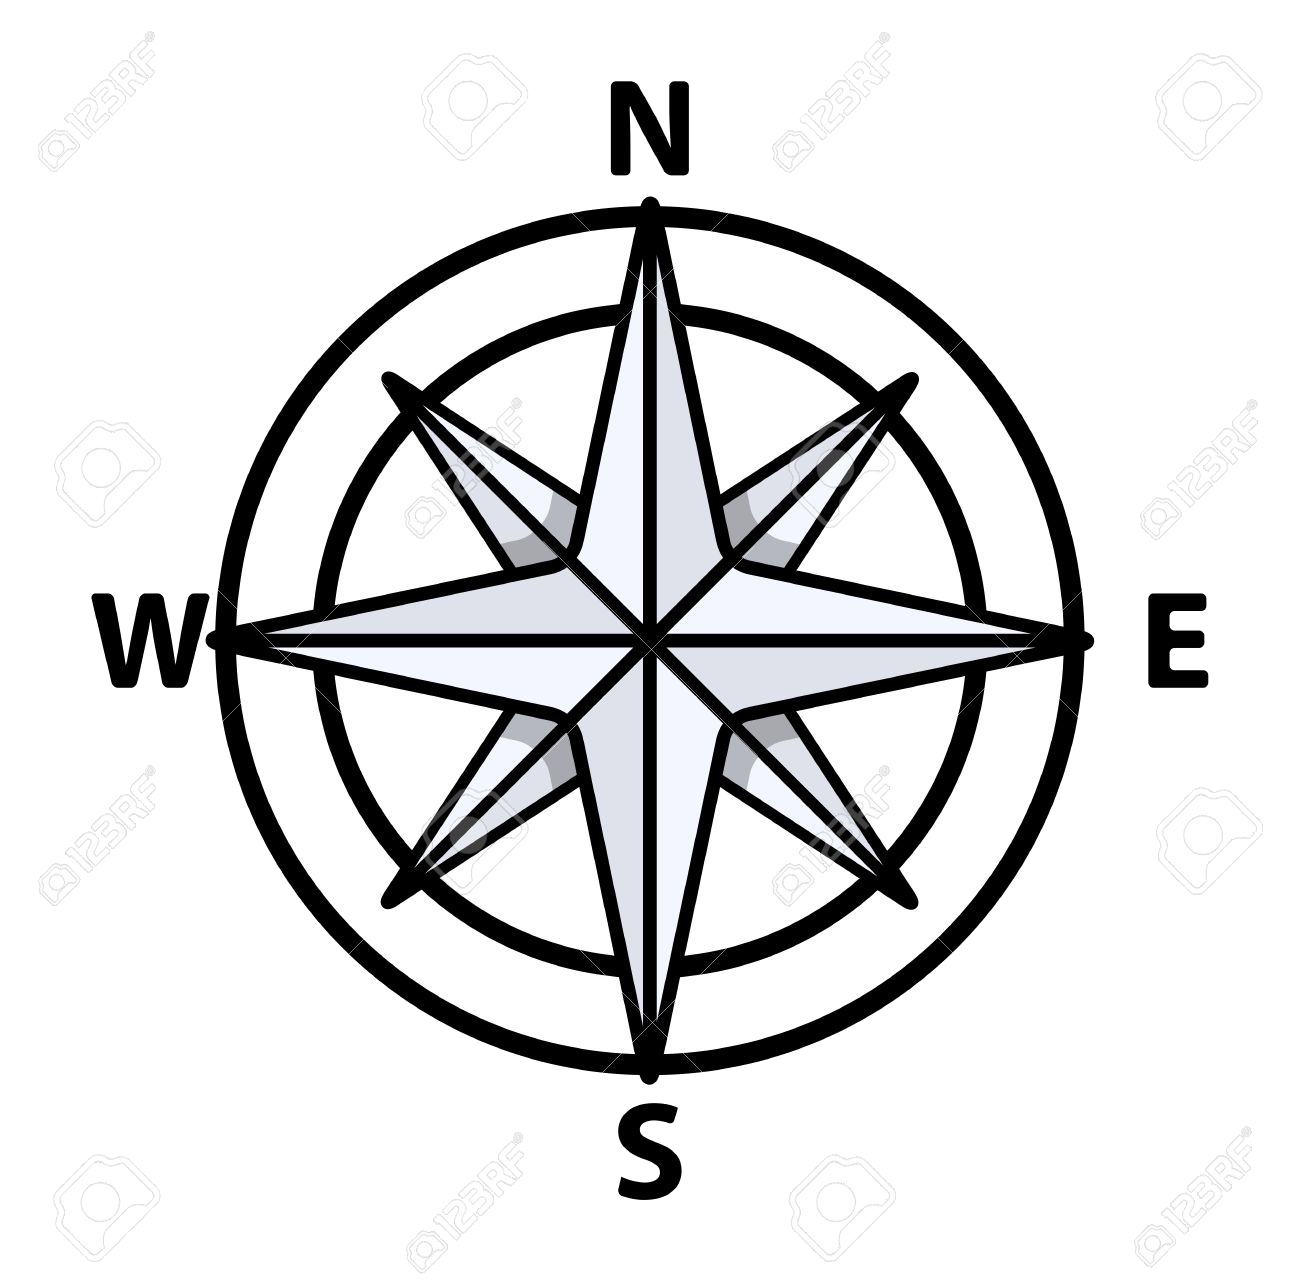 Compass clipart black and white. Free best transparent png